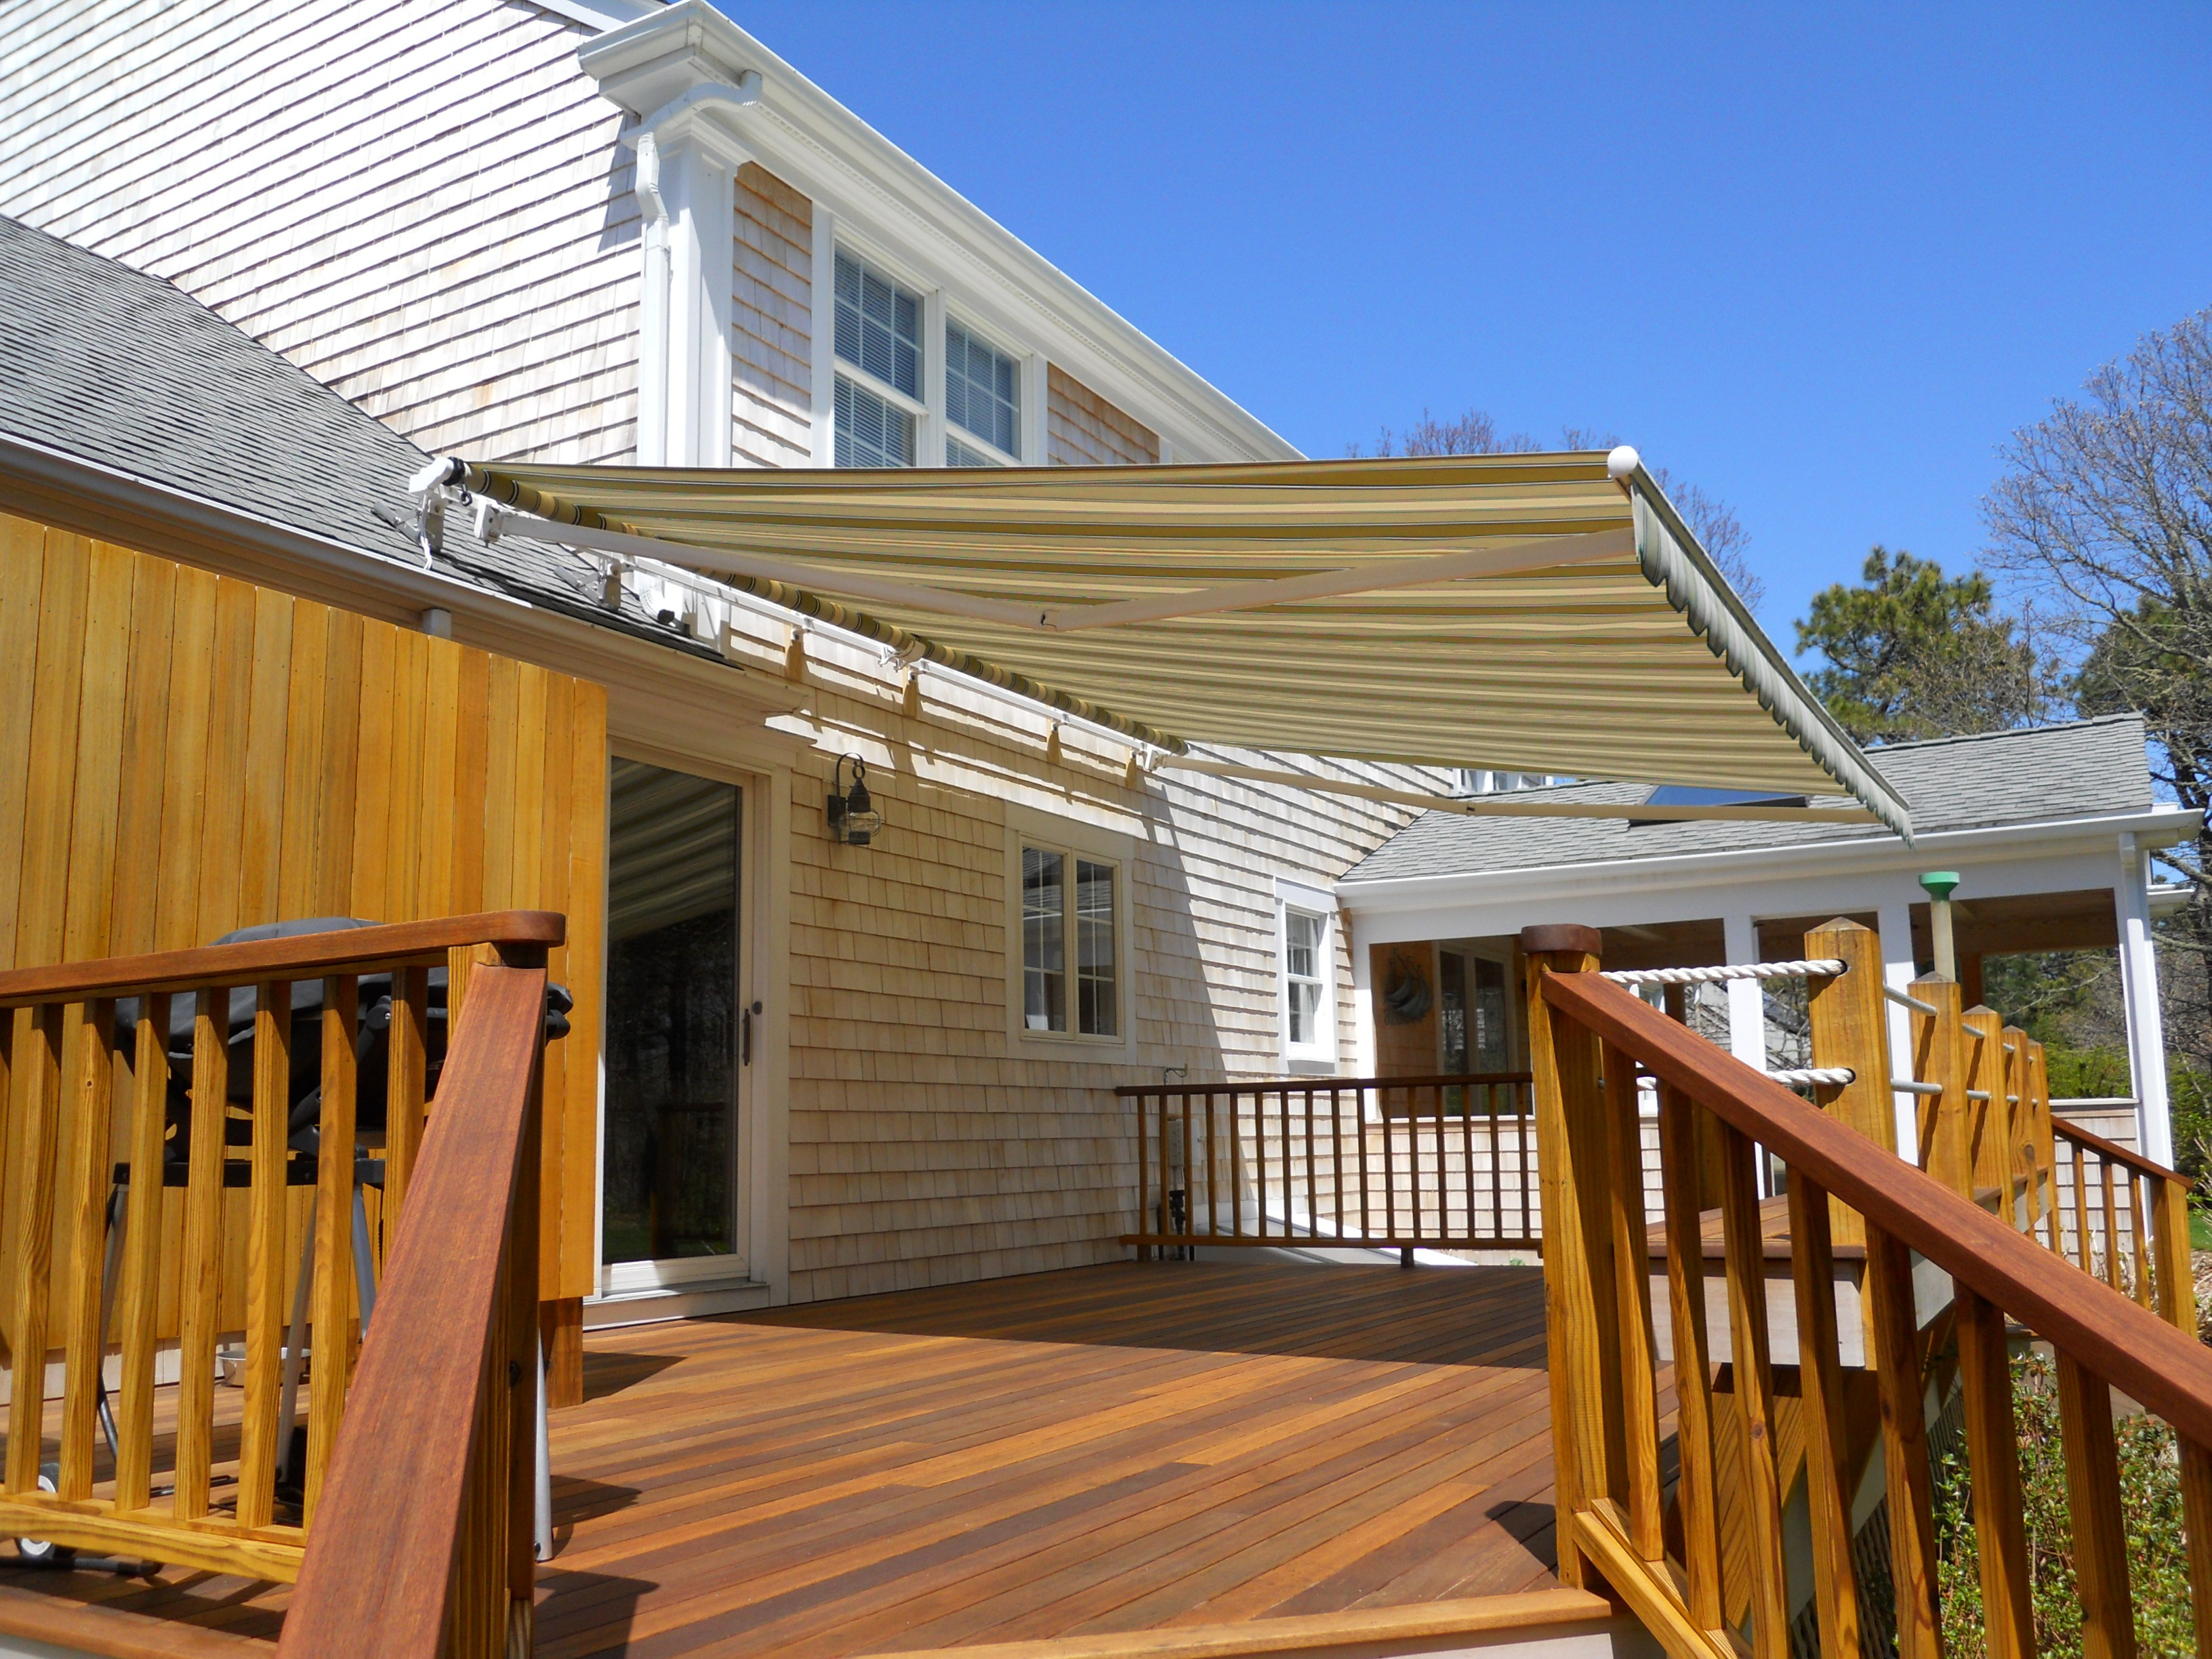 retractableawnings miami gardens fl 33014 angies list